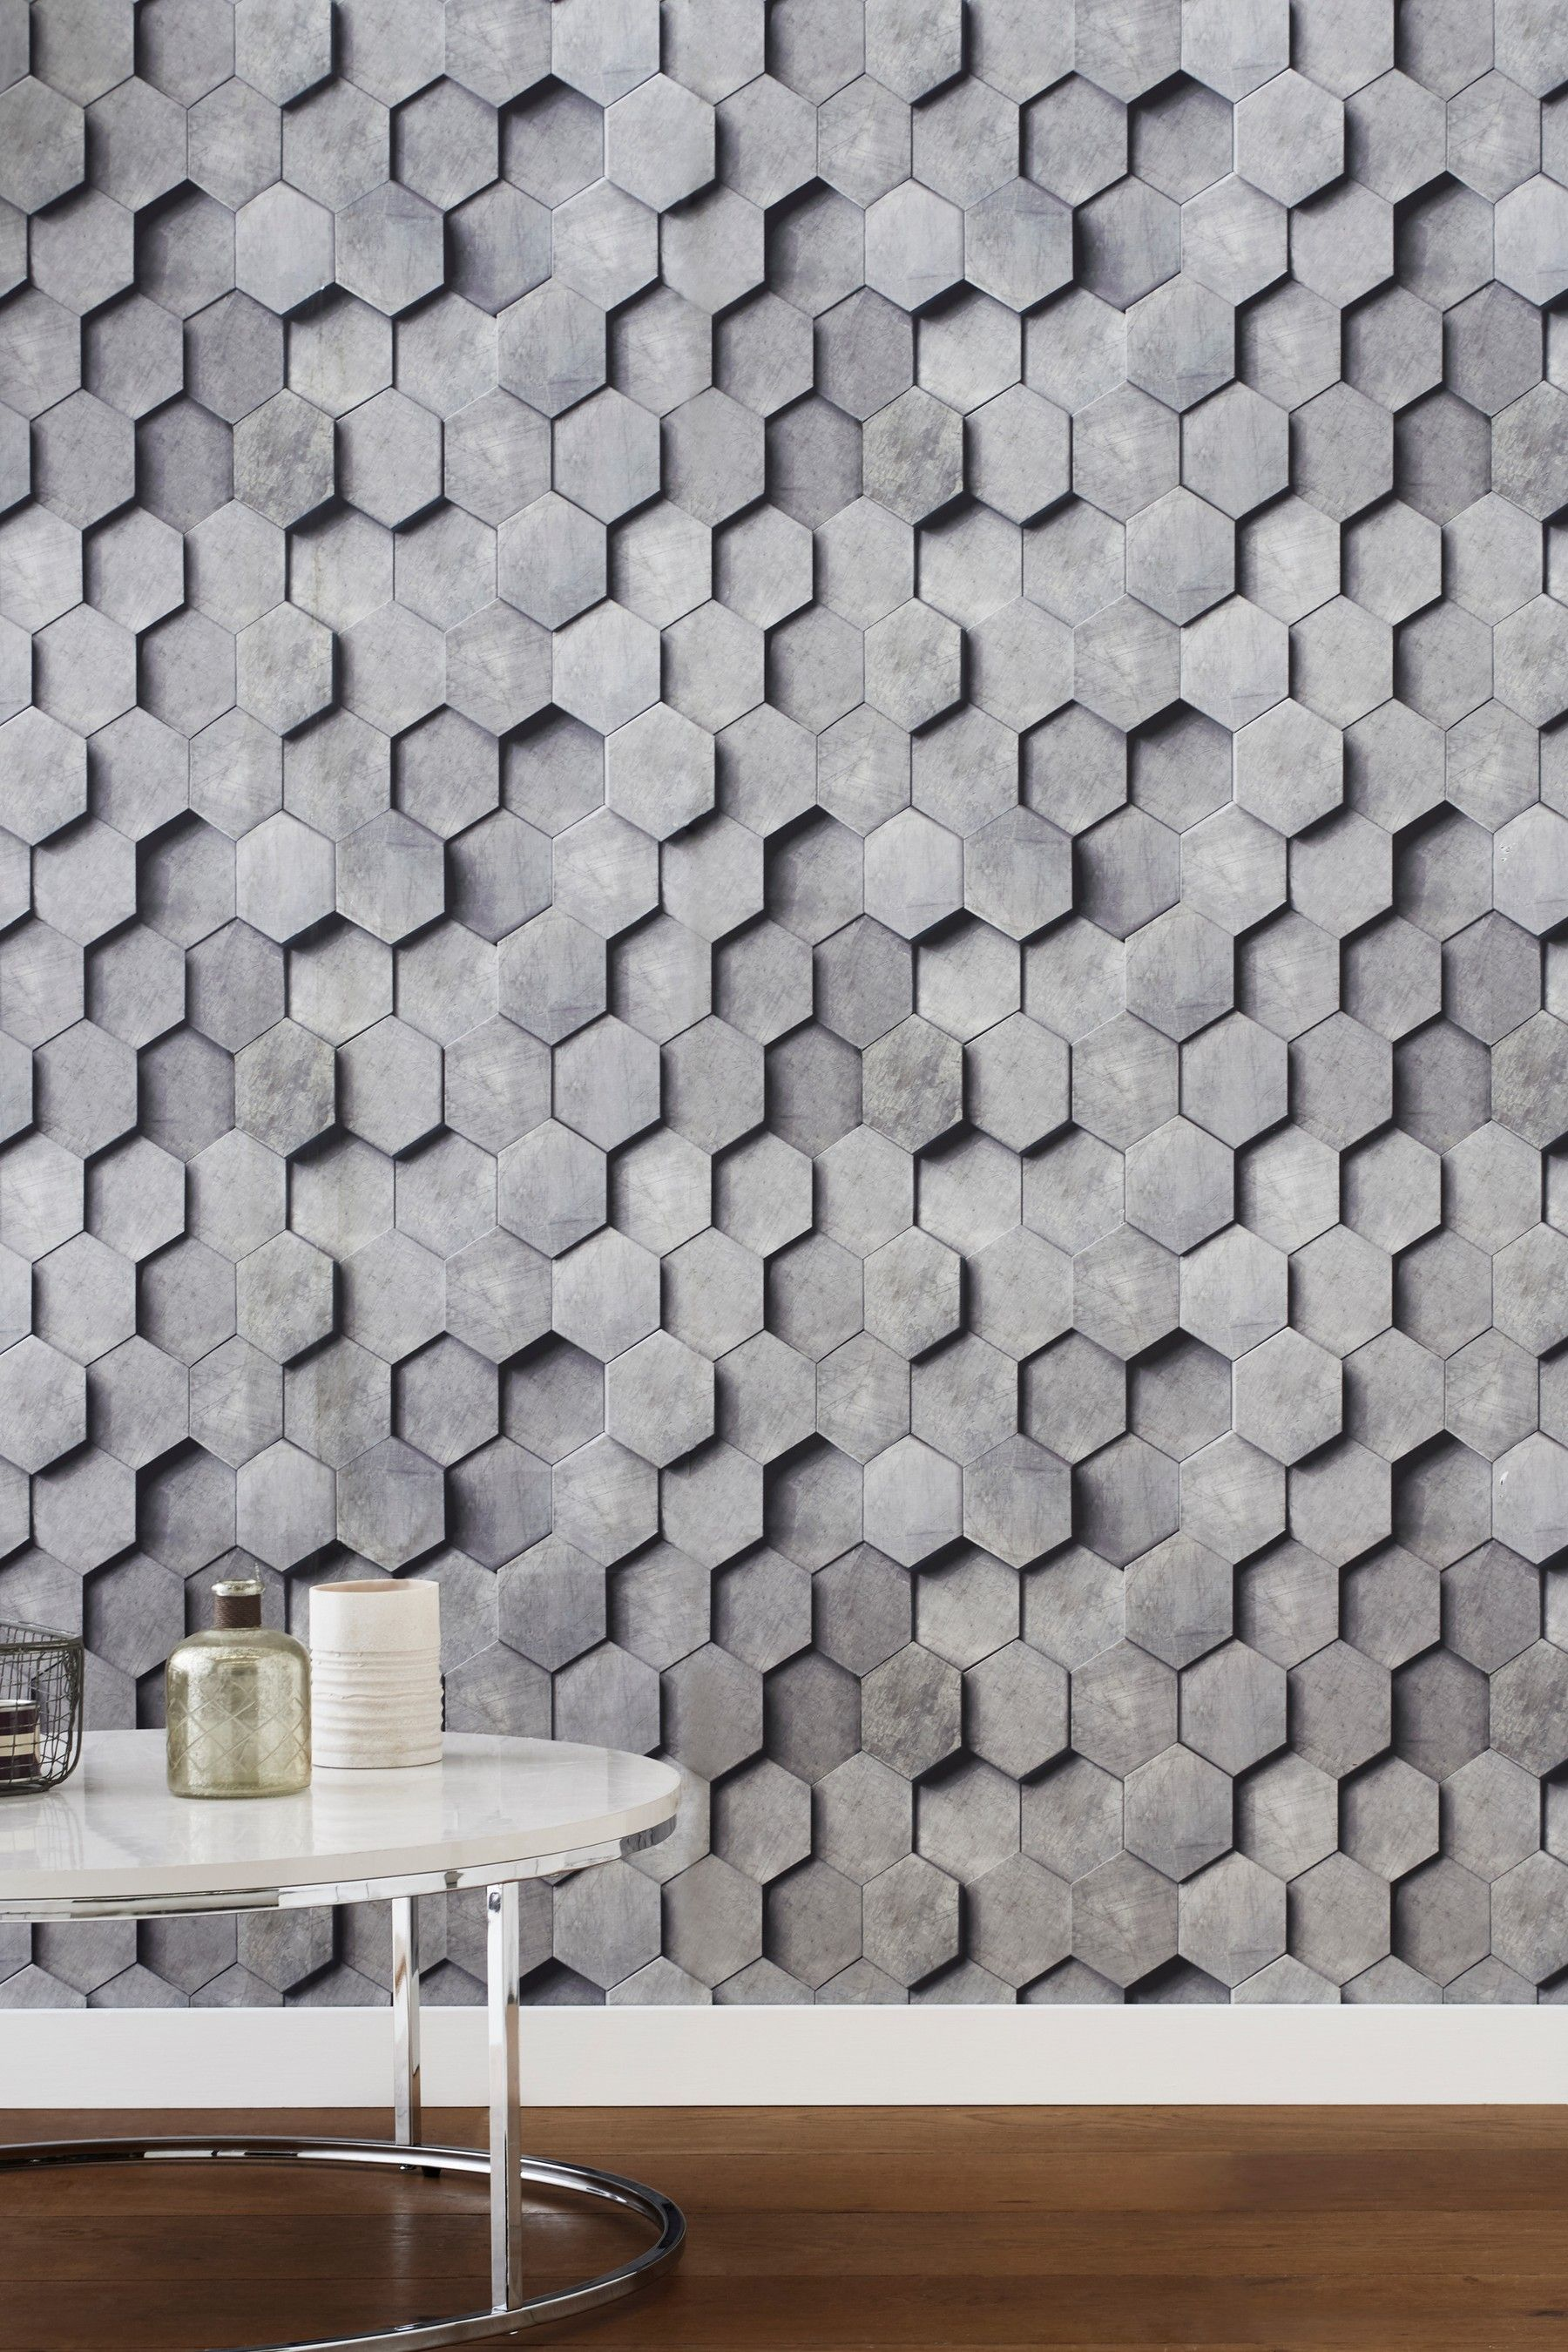 Buy Paste The Wall Hexagonal 3d Wallpaper From The Next Uk